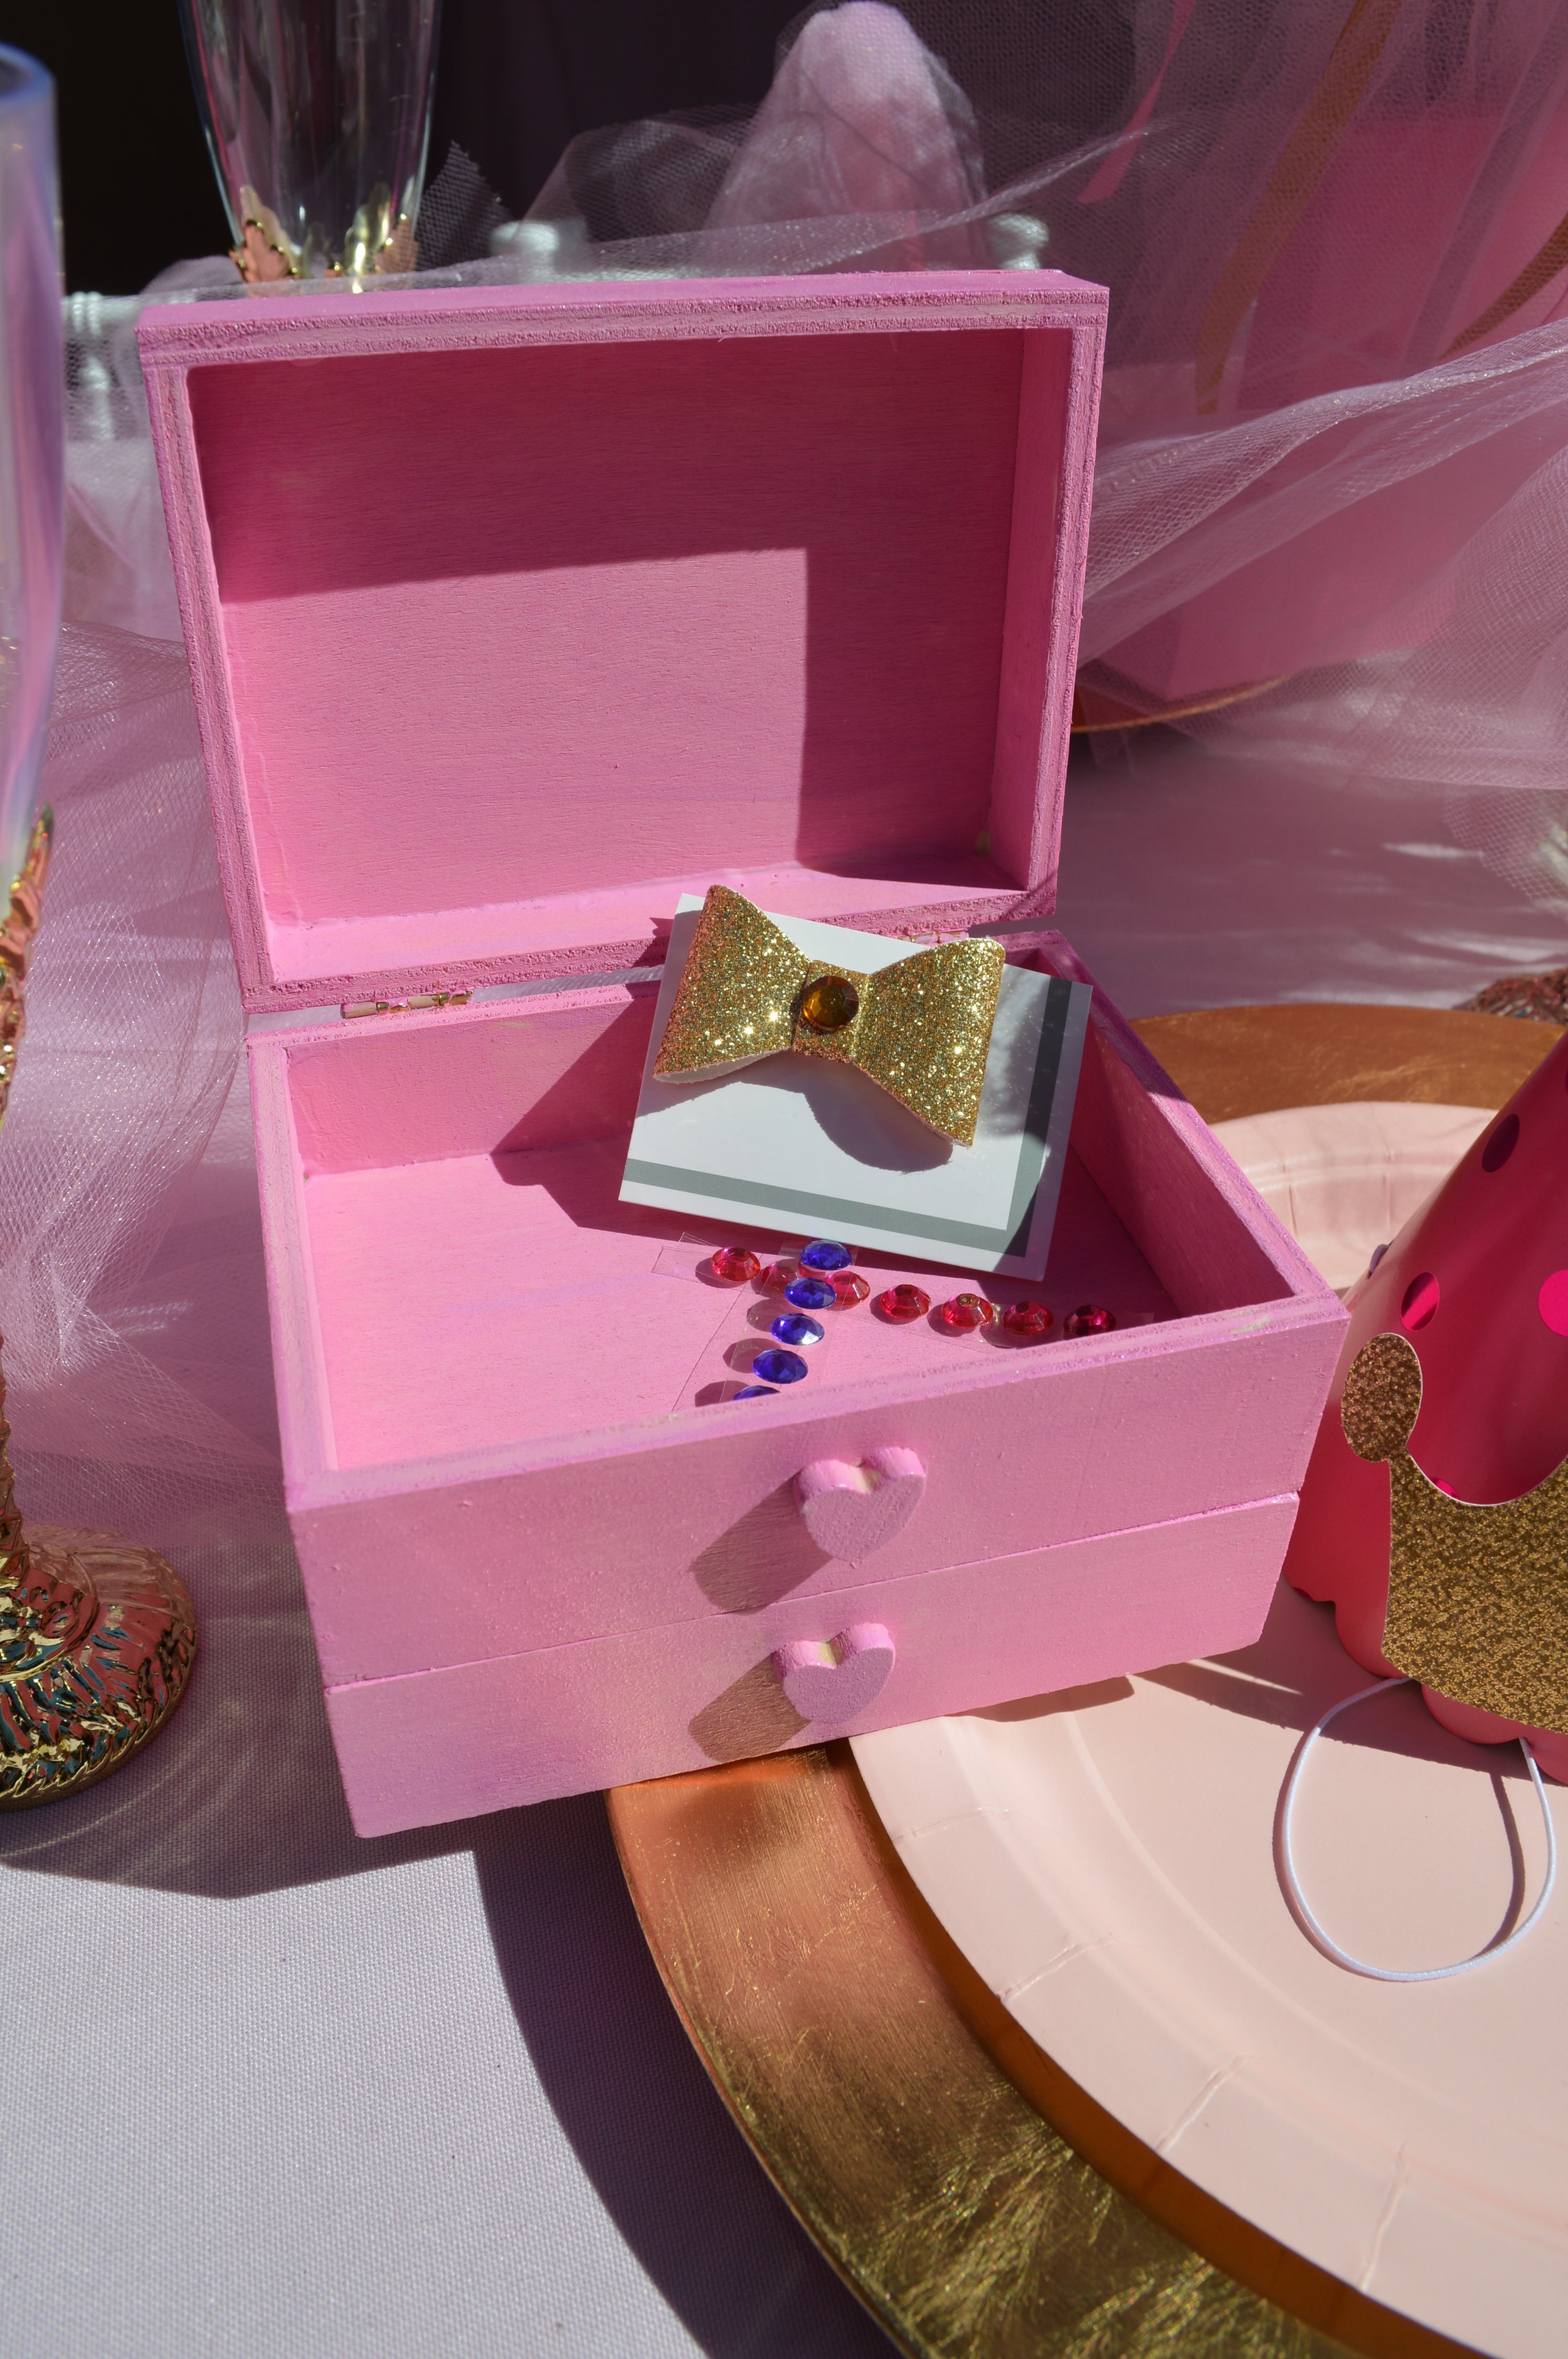 Each guest was given a pink wooden jewelry box with a bow and rhinestones for decorating.